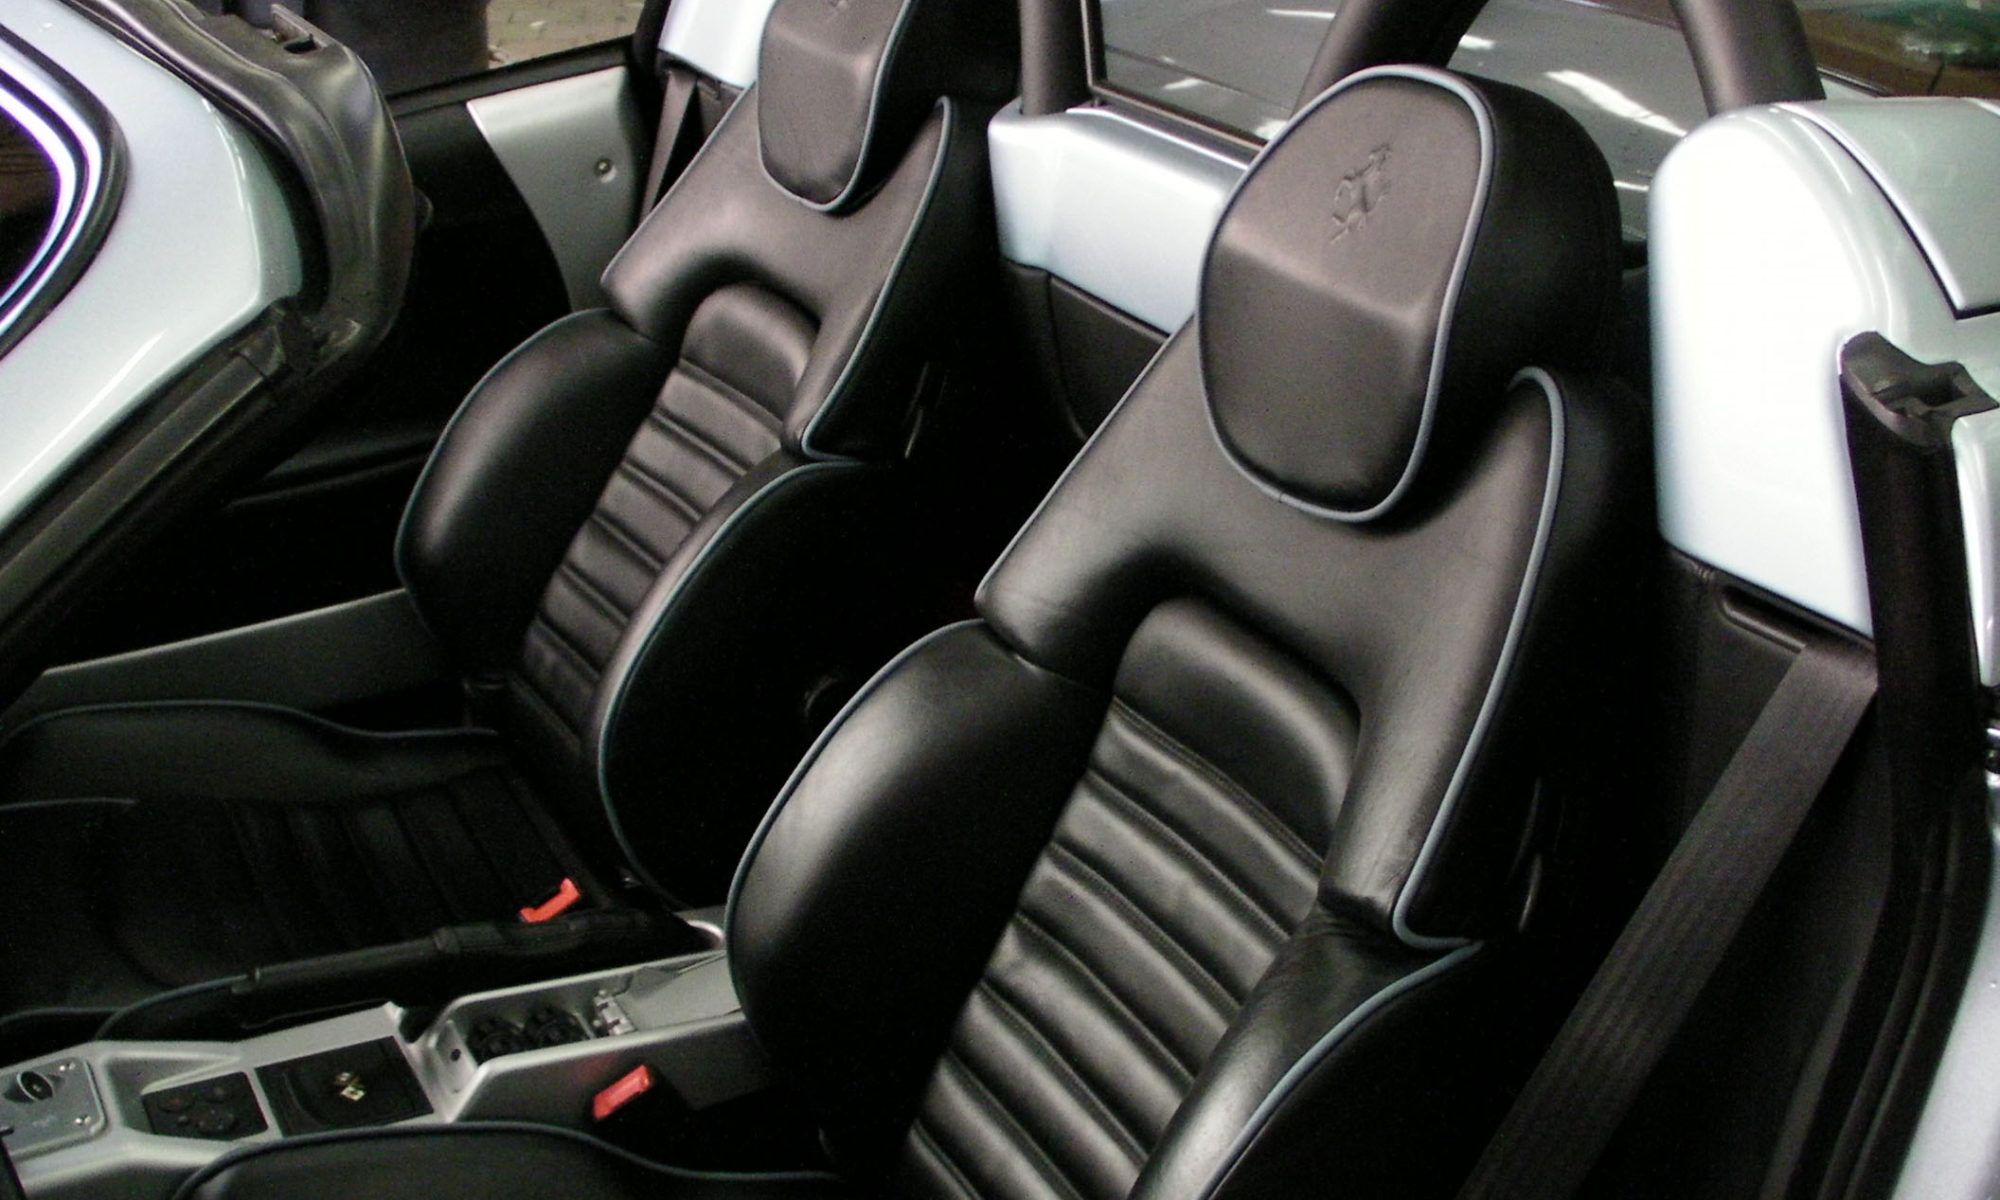 Ferrari F360. Services: Seats and headrests with contrast piping.